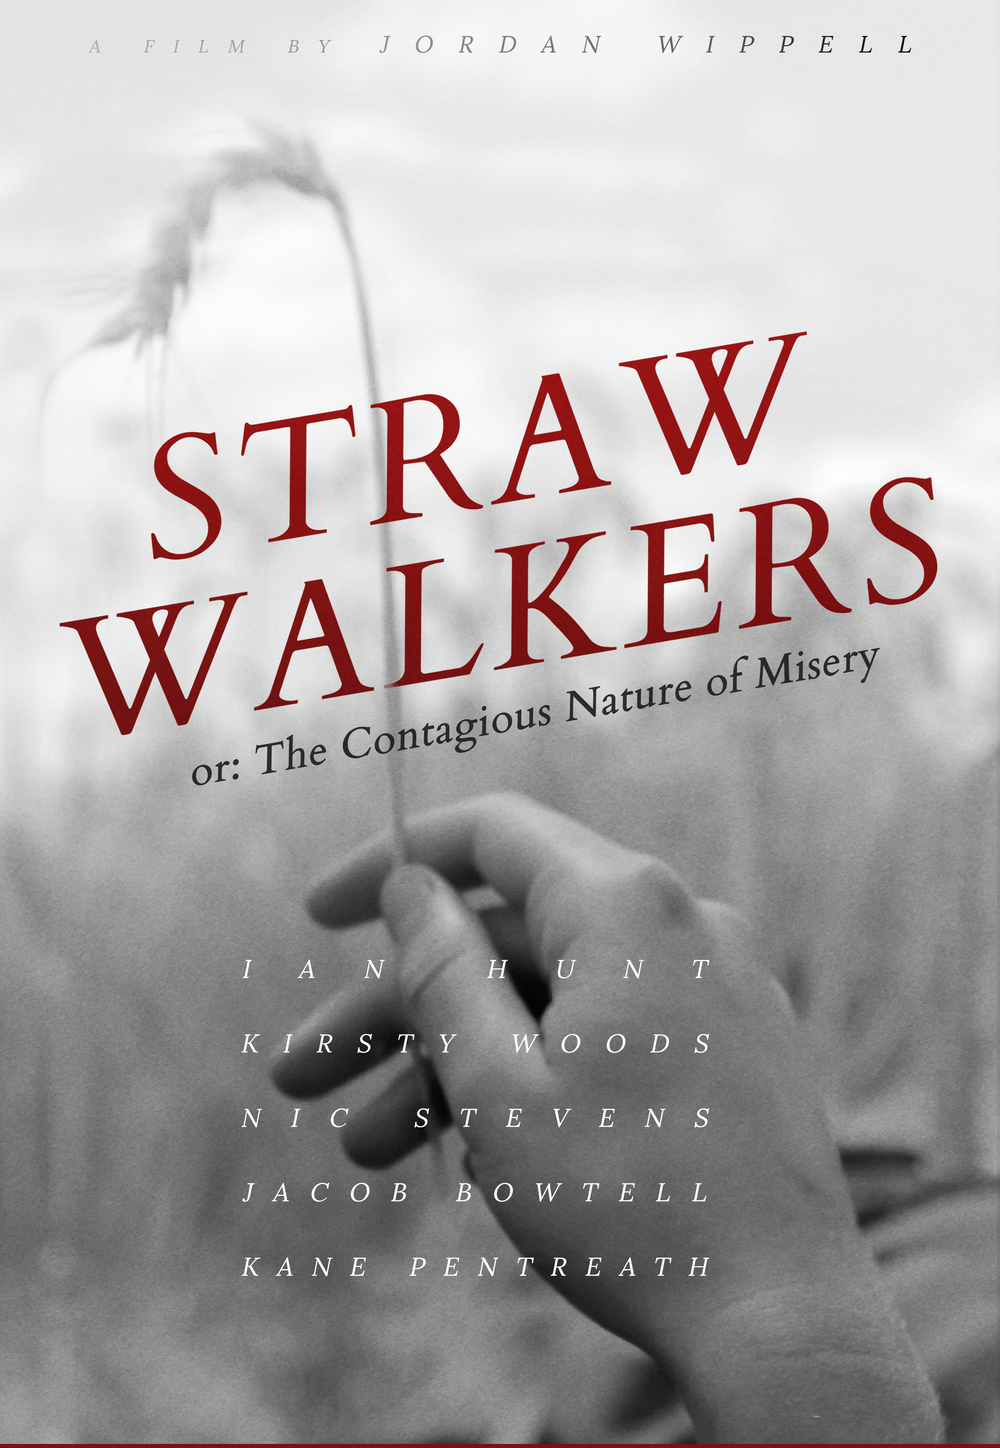 straw walkers or: the contagious nature of misery (2019)